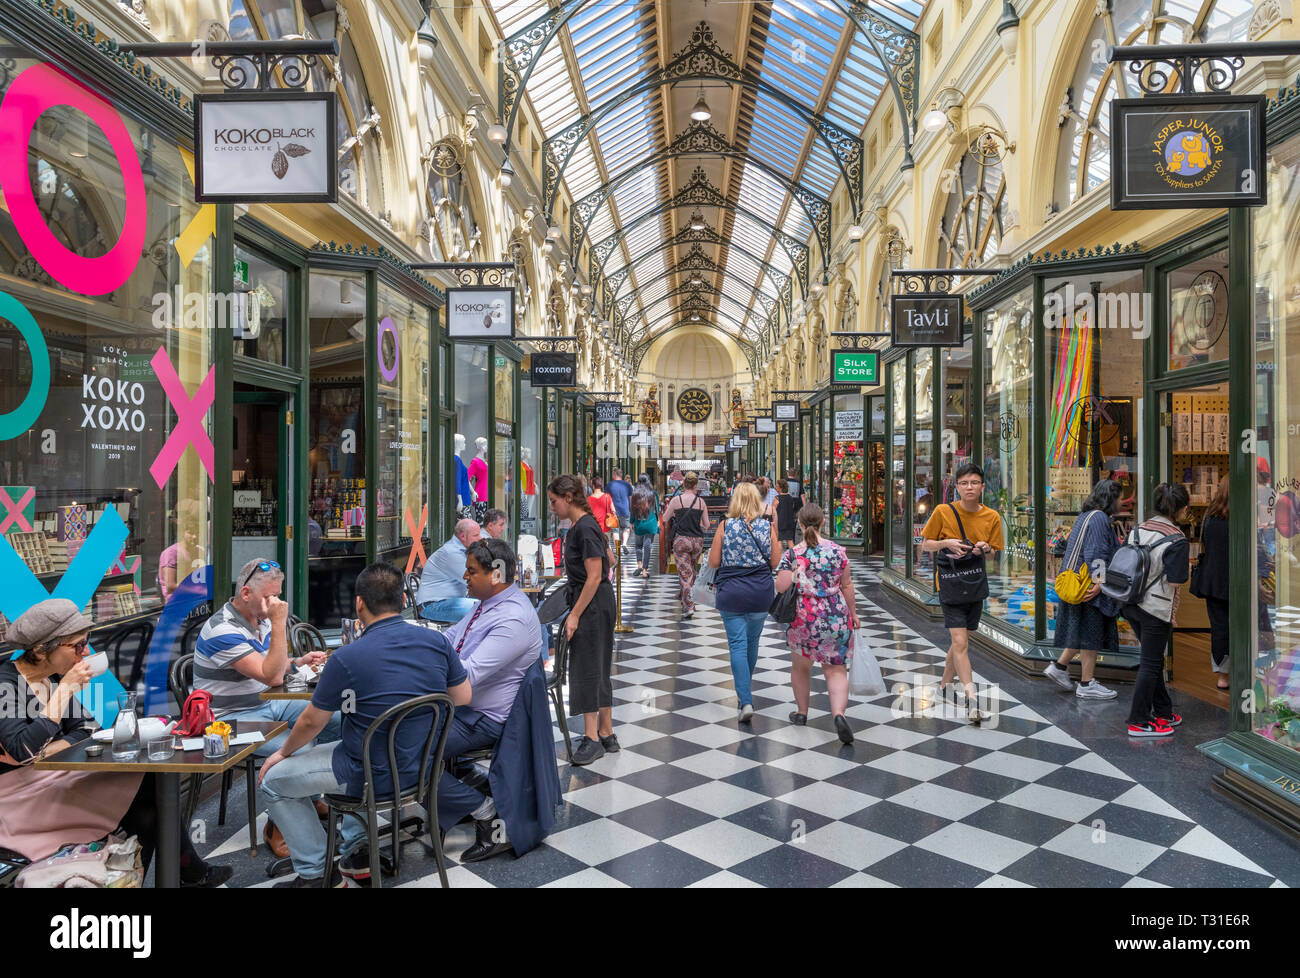 The Royal Arcade, a Victorian era shopping centre in the Central Business District (CBD), Melbourne, Victoria, Australia - Stock Image